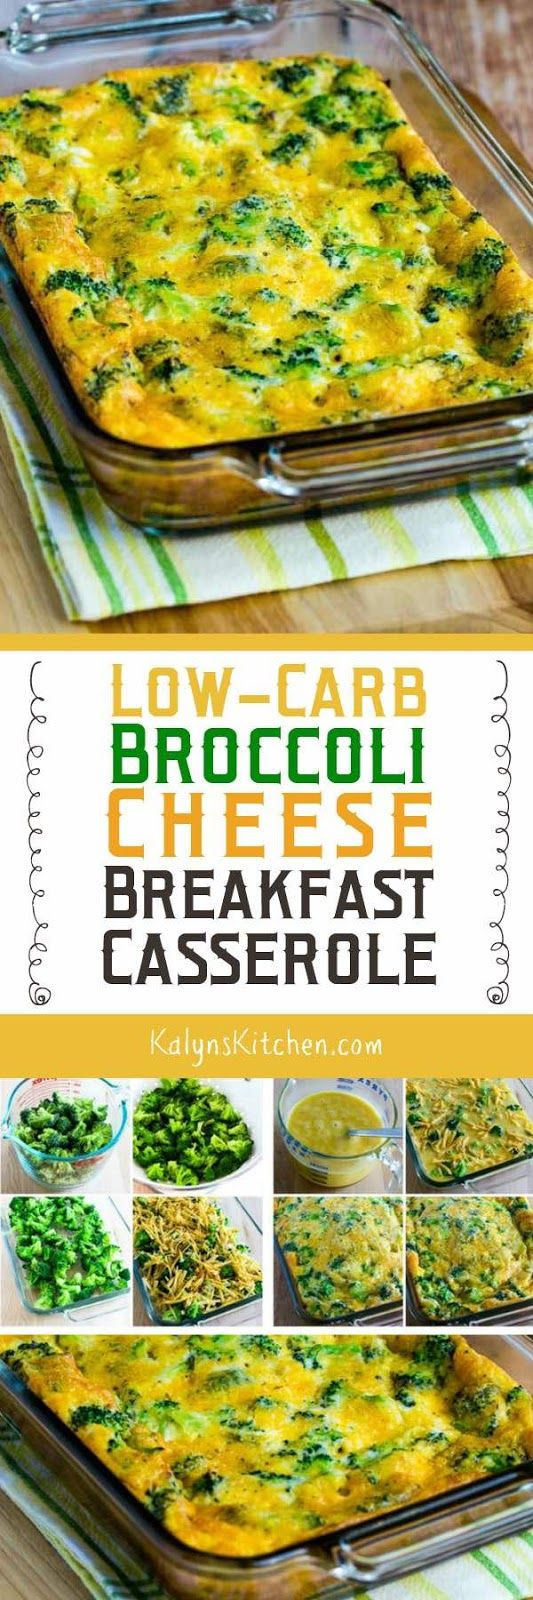 This tasty Low-Carb Broccoli Cheese Breakfast Casserole is one that I make over and over, and this delicious Meatless Monday breakfast idea is also Keto, low-glycemic, gluten-free and South Beach Diet Phase One! [found on KalynsKitchen.com]